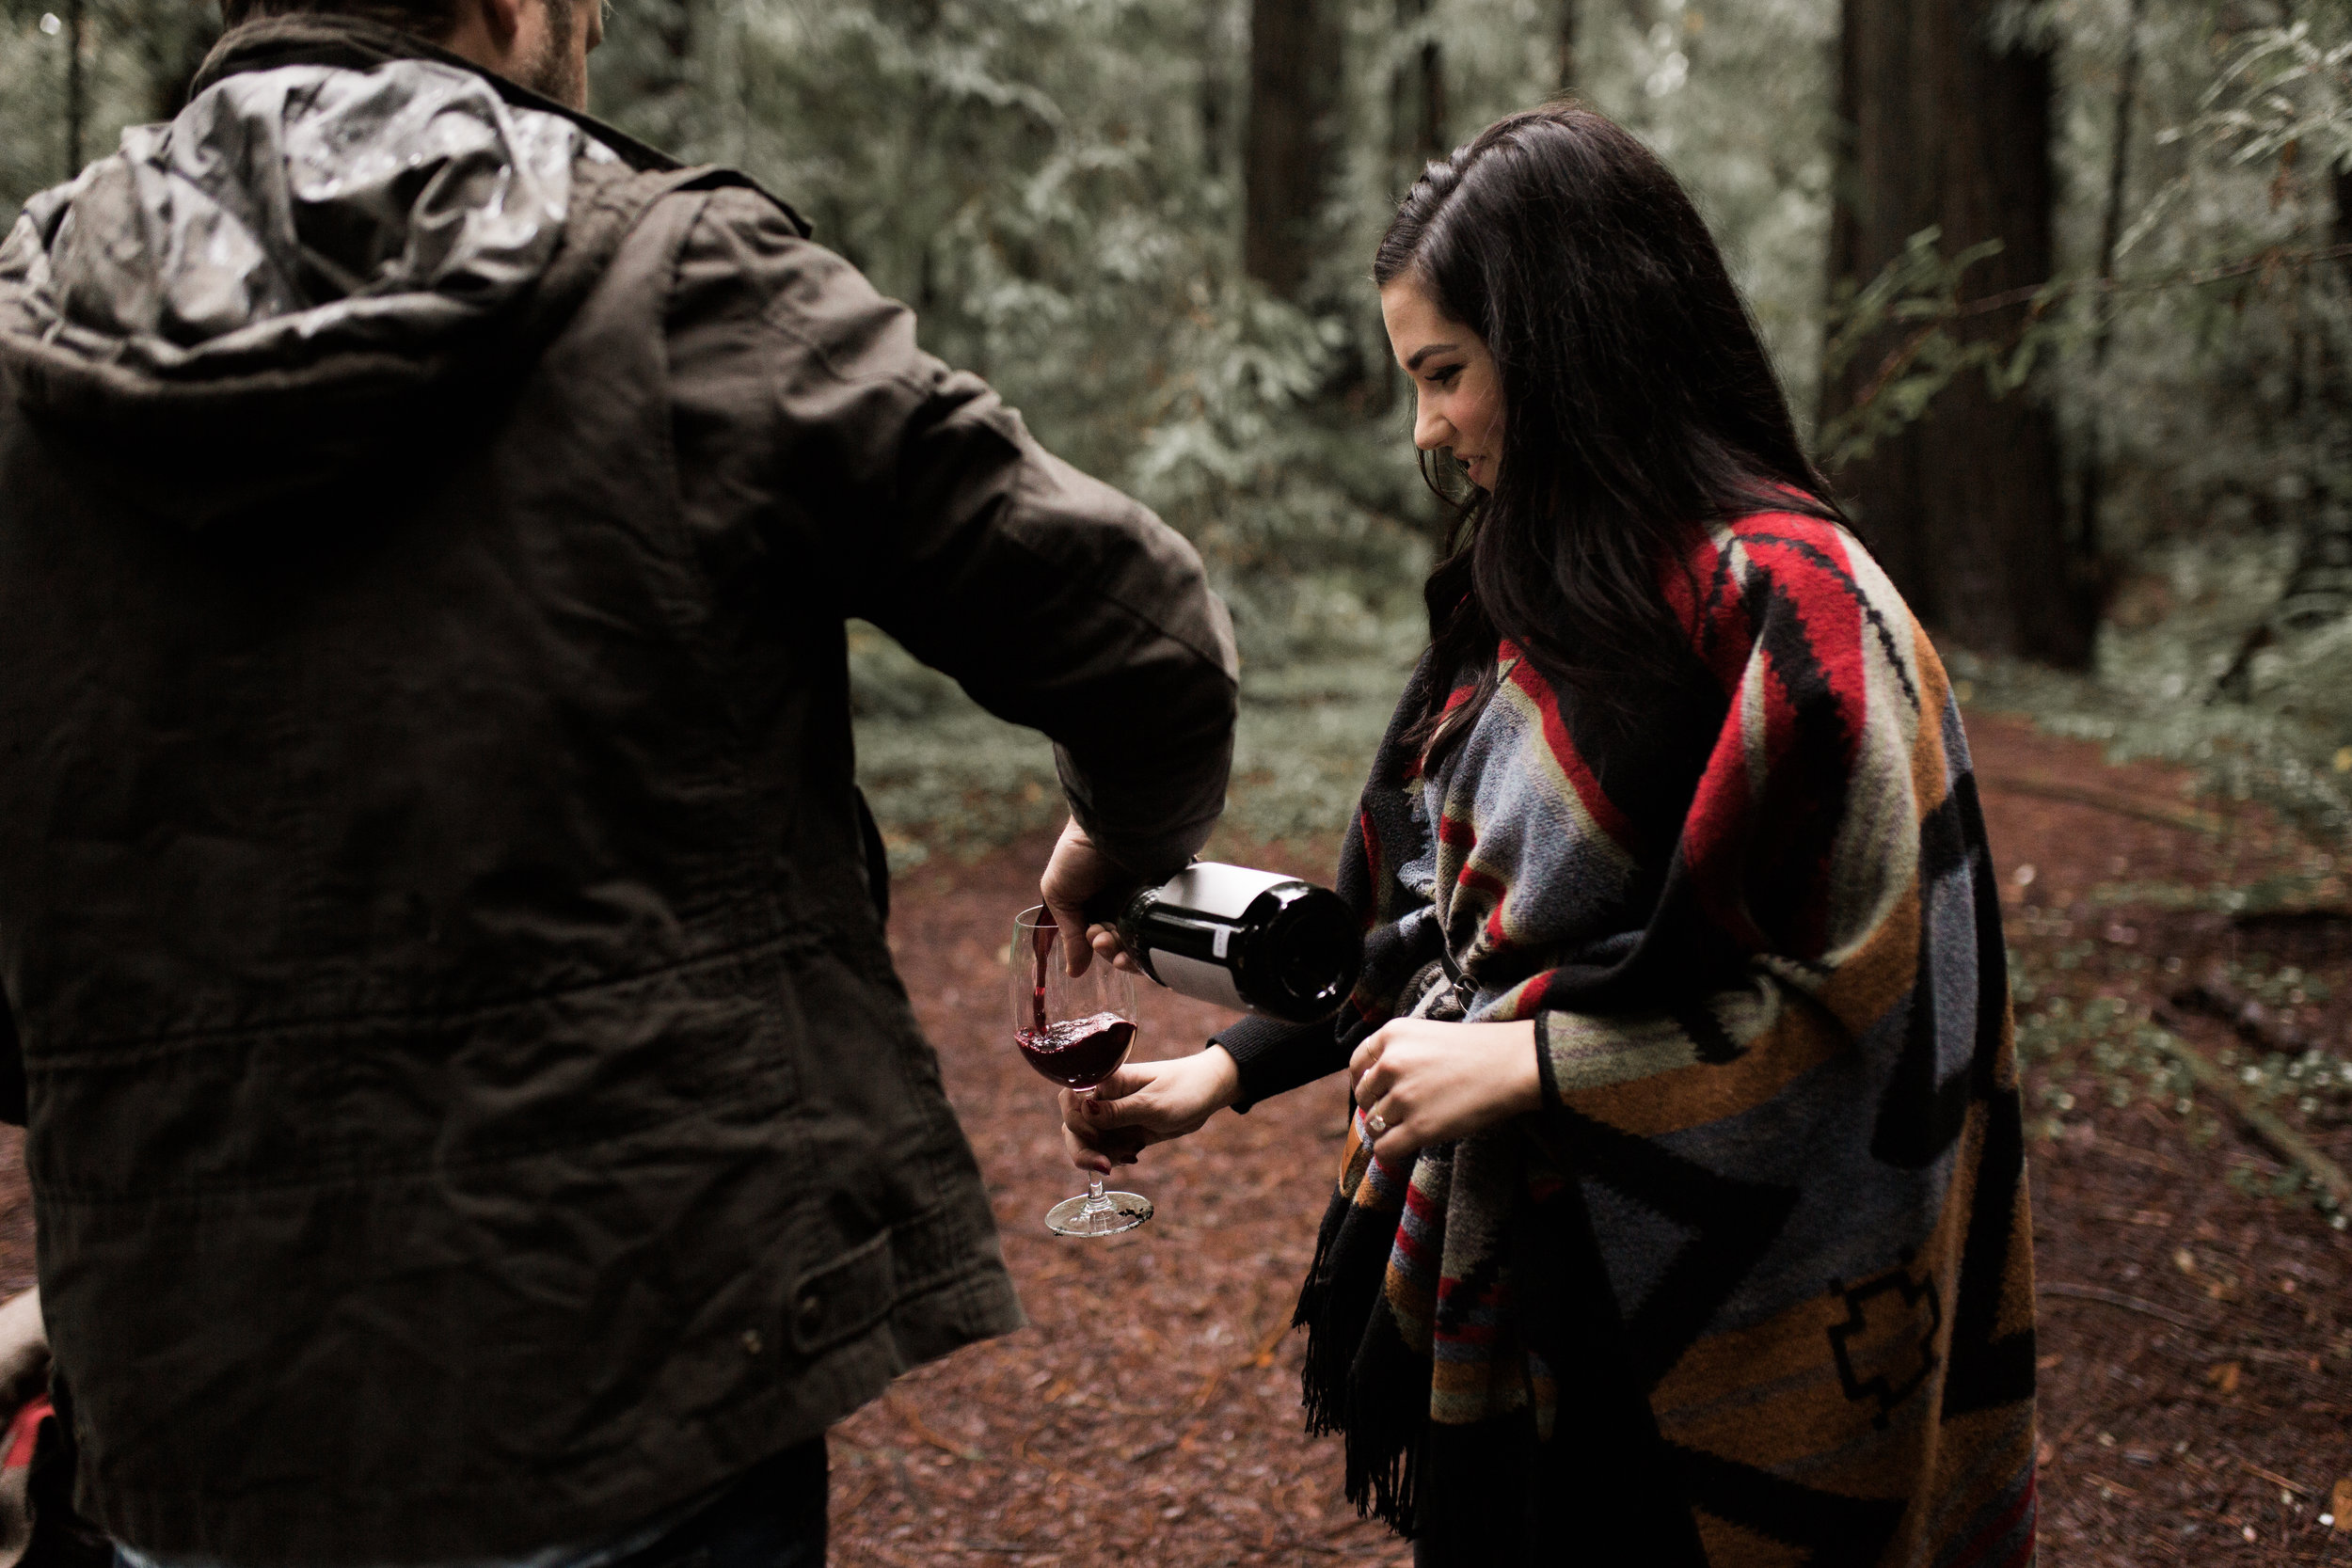 nicole-daacke-photography-redwoods-national-park-forest-rainy-foggy-adventure-engagement-session-humboldt-county-old-growth-redwood-tree-elopement-intimate-wedding-photographer-3.jpg